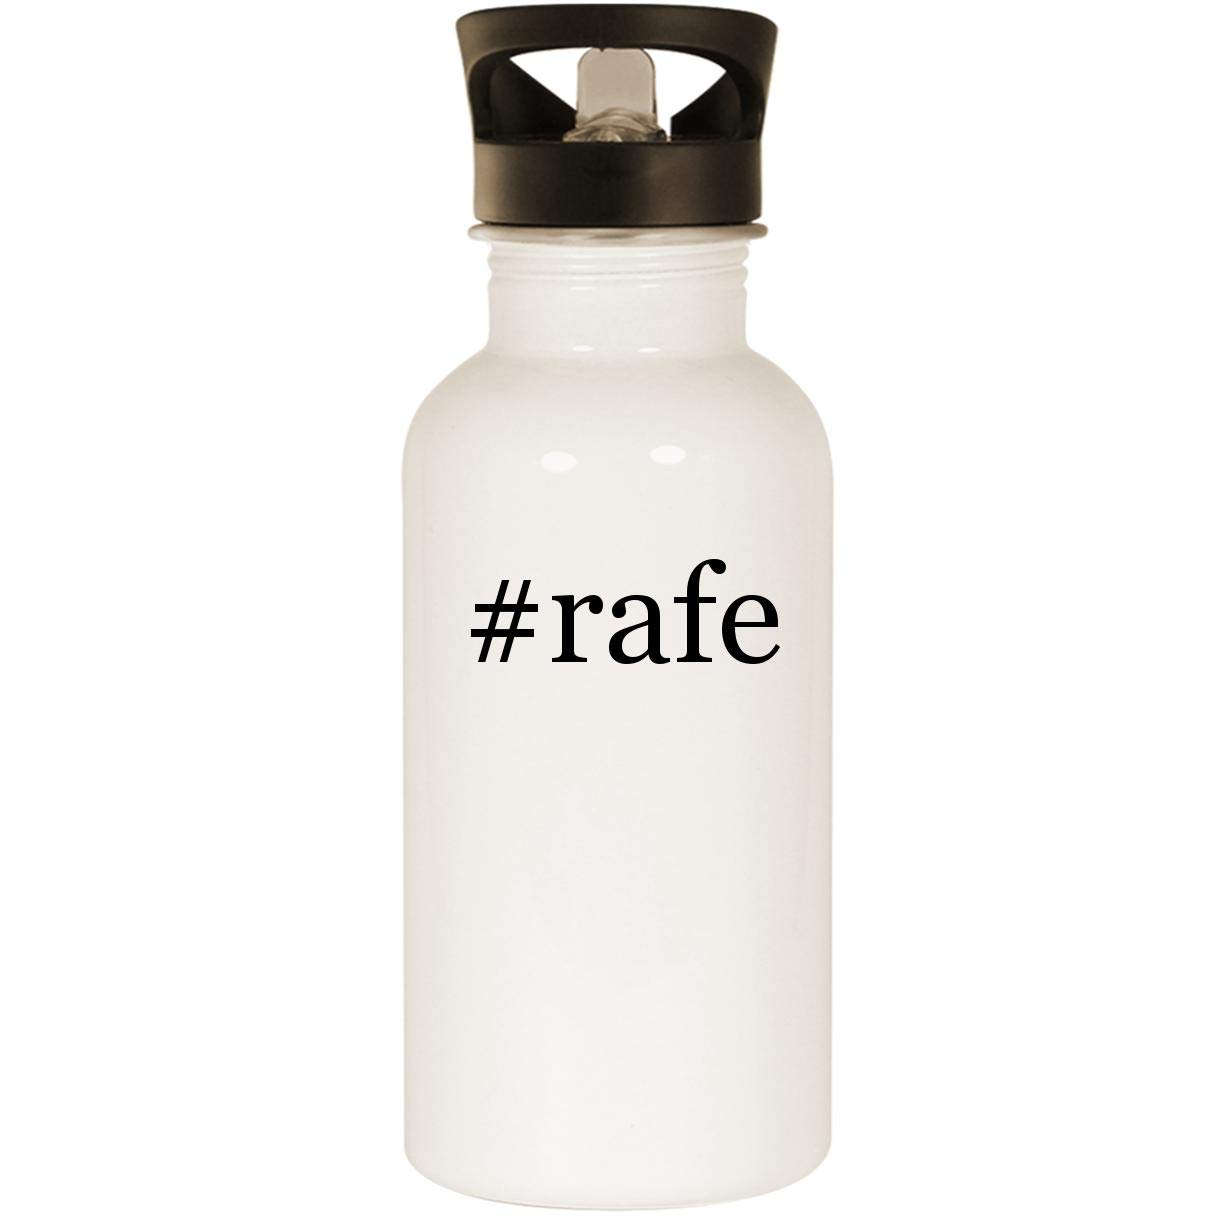 #rafe - Stainless Steel 20oz Road Ready Water Bottle, White